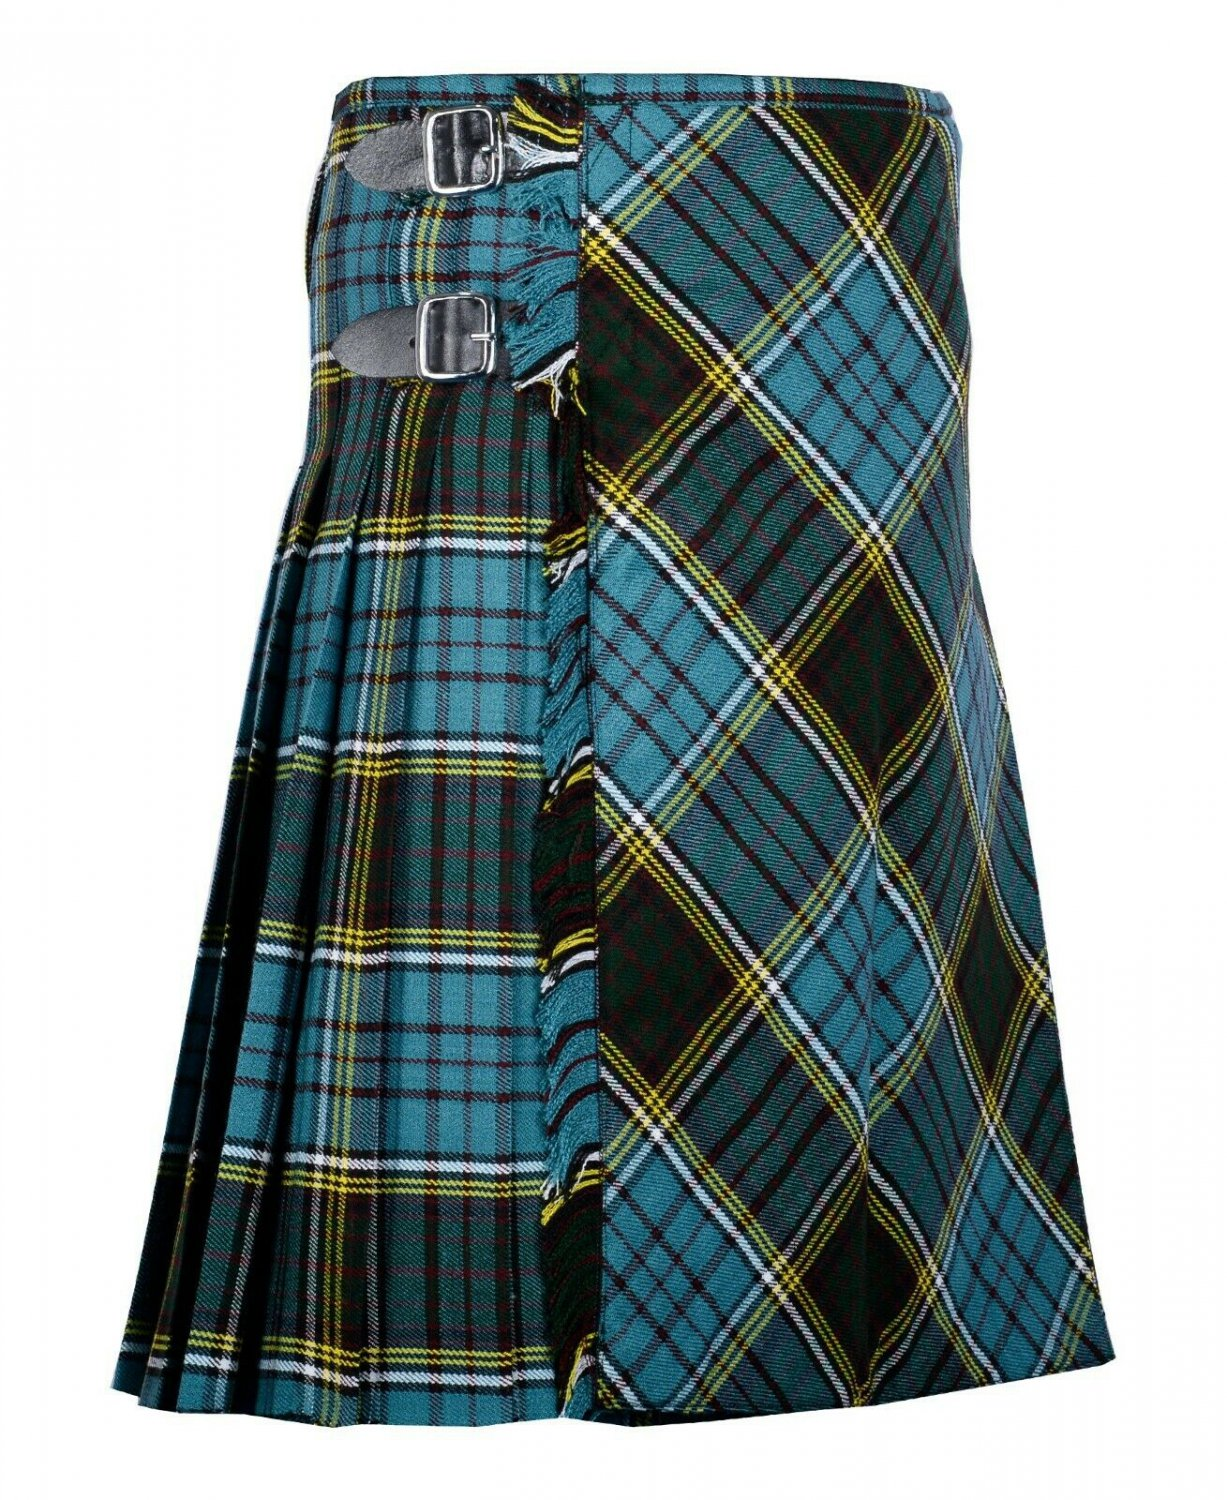 56 inches waist Bias Apron Traditional 5 Yard Scottish Kilt for Men - Anderson Tartan